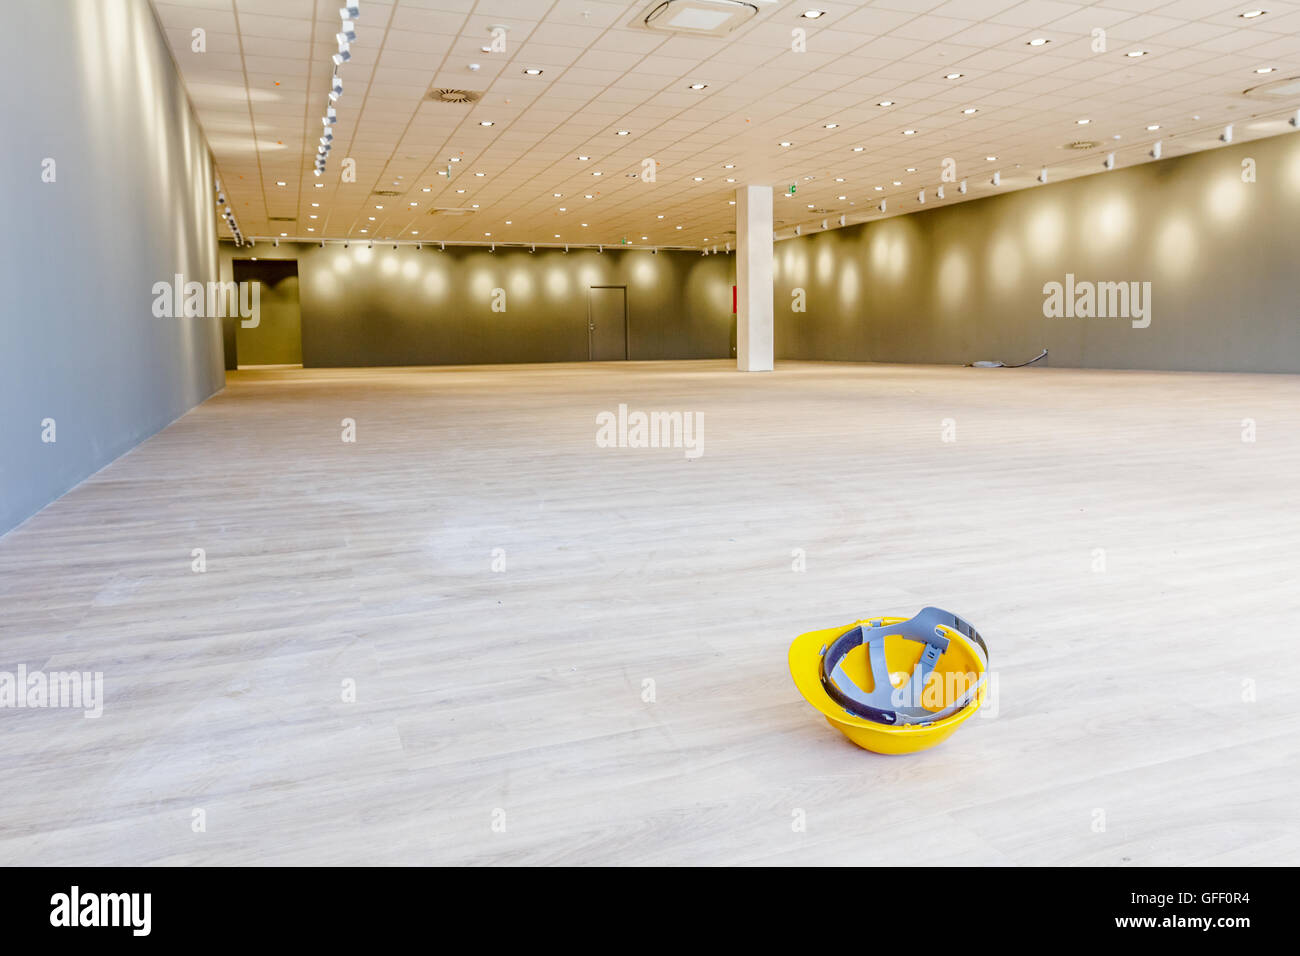 Yellow safety helmet is placed upside down on the floor of a large showroom in a modern business centre with ceiling - Stock Image